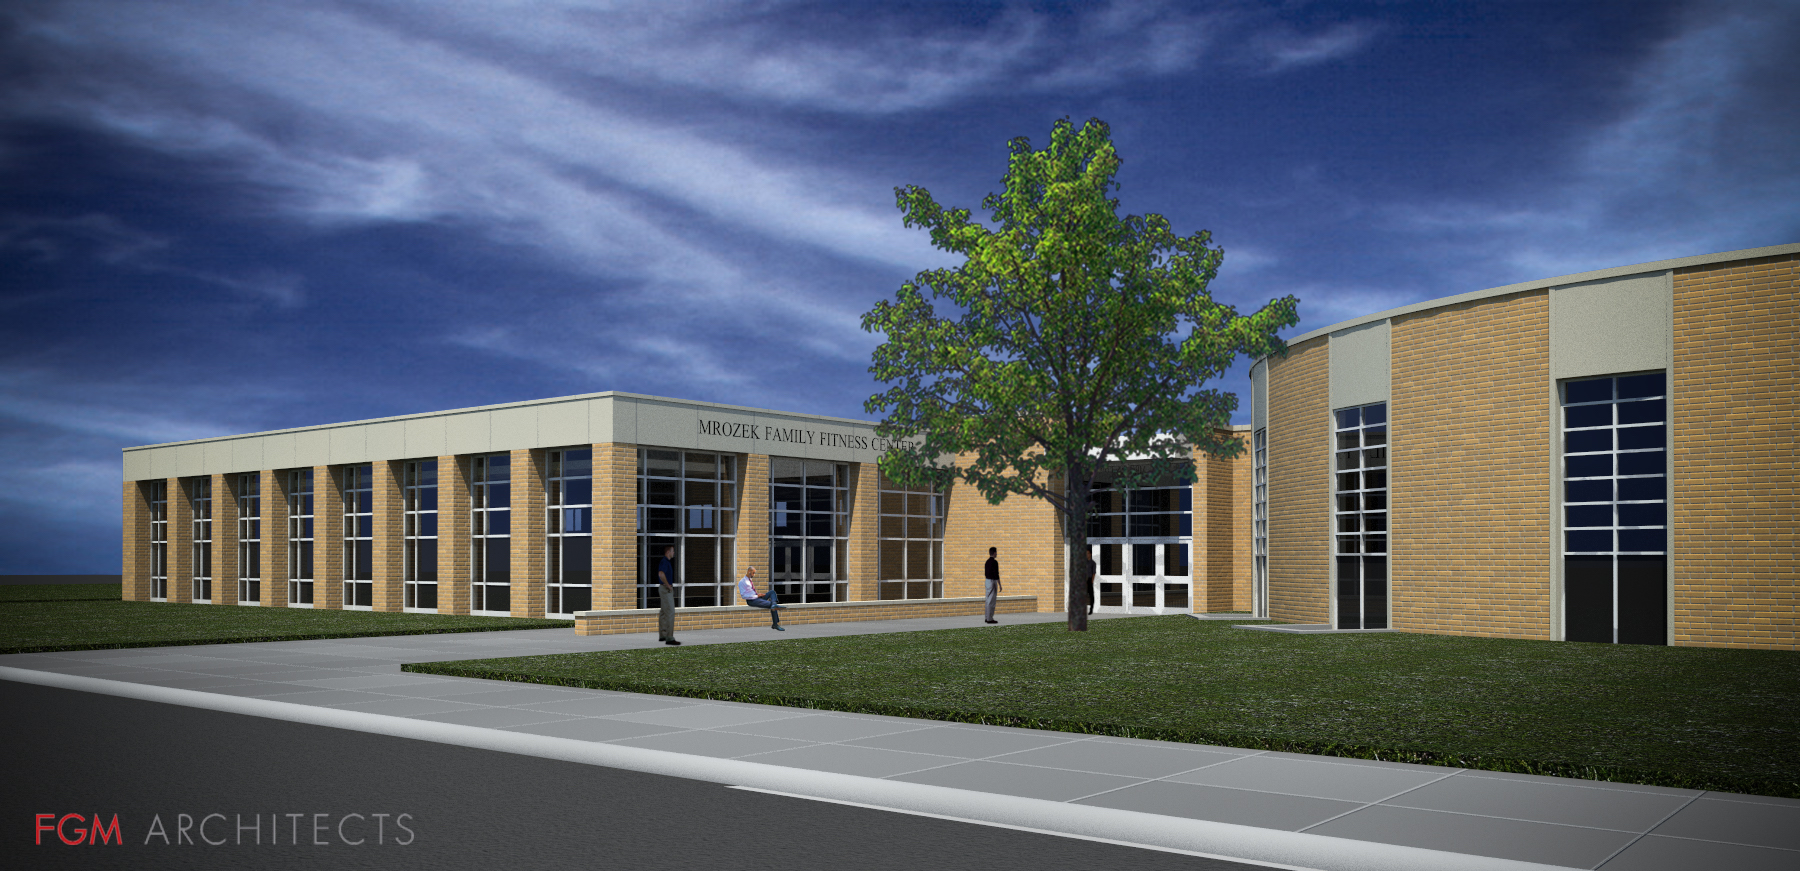 St. Rita High School's Mrozek Family Fitness Center